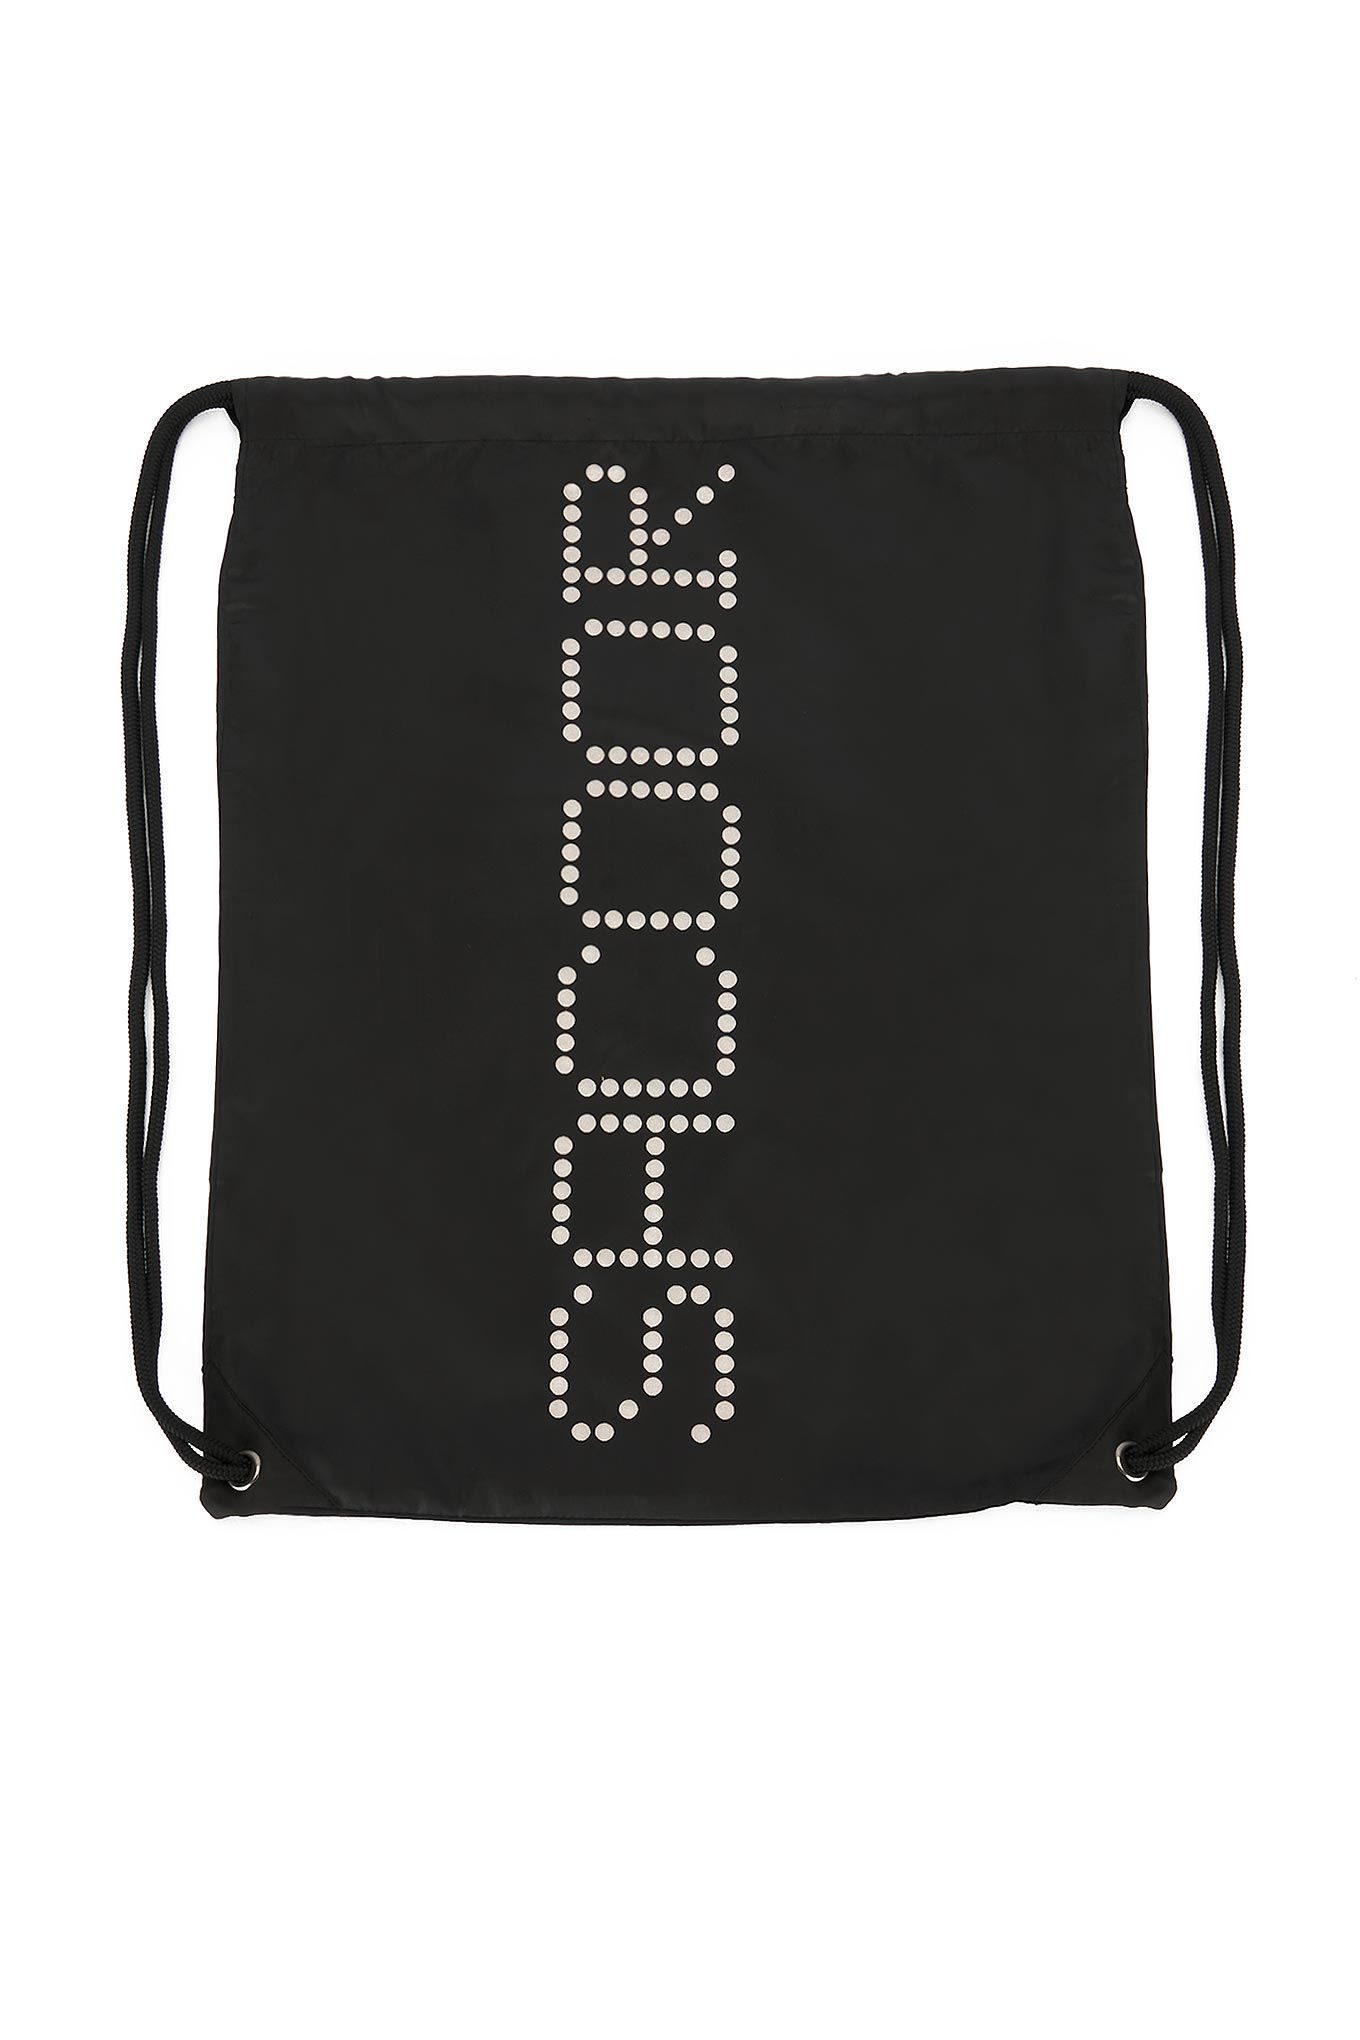 Bag Black Sport Woman